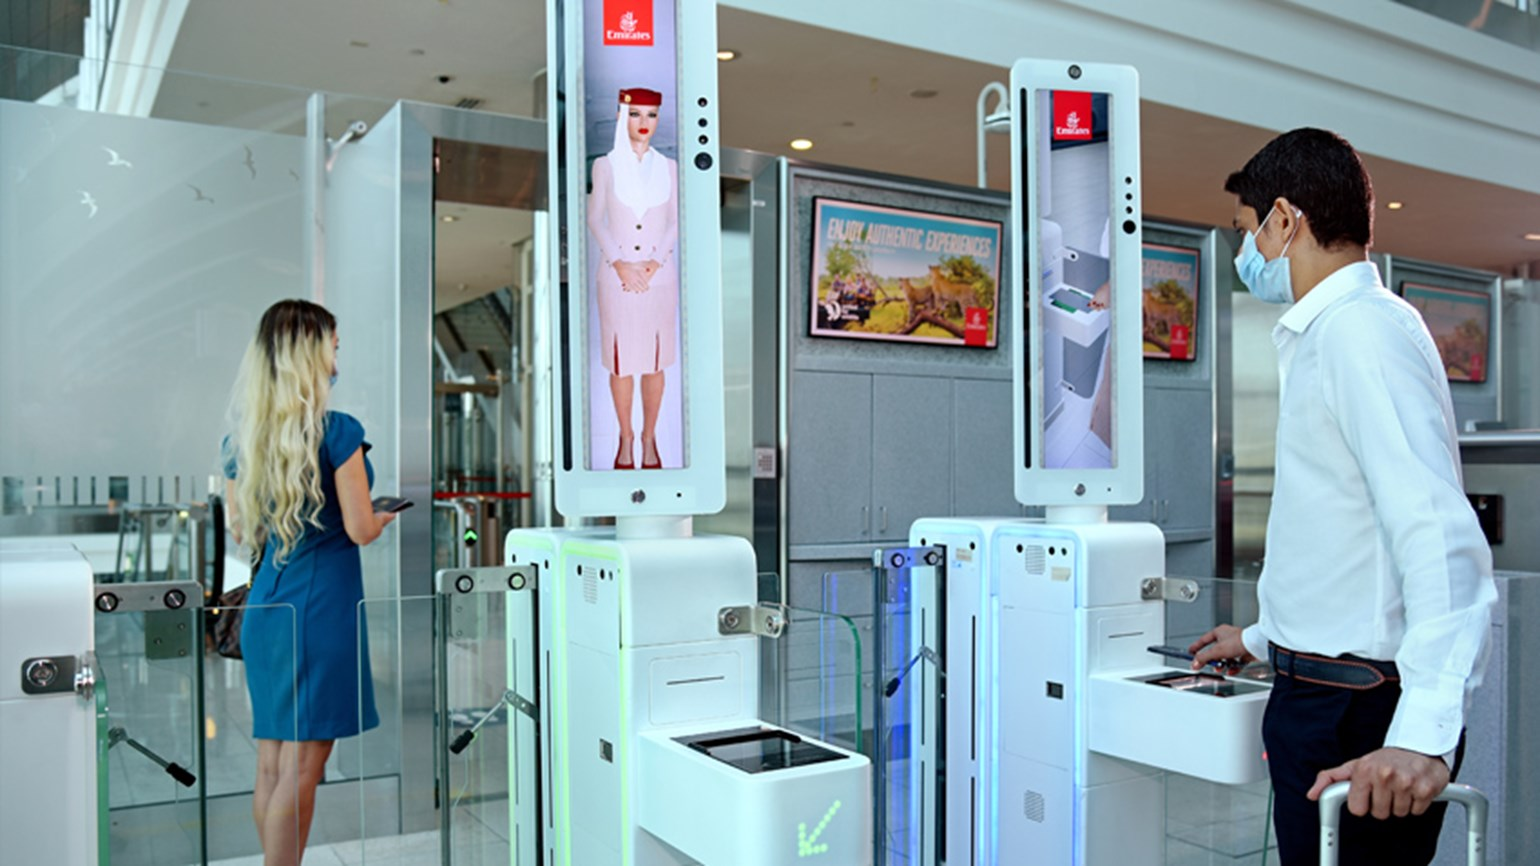 Emirates offers contactless airport experience in Dubai